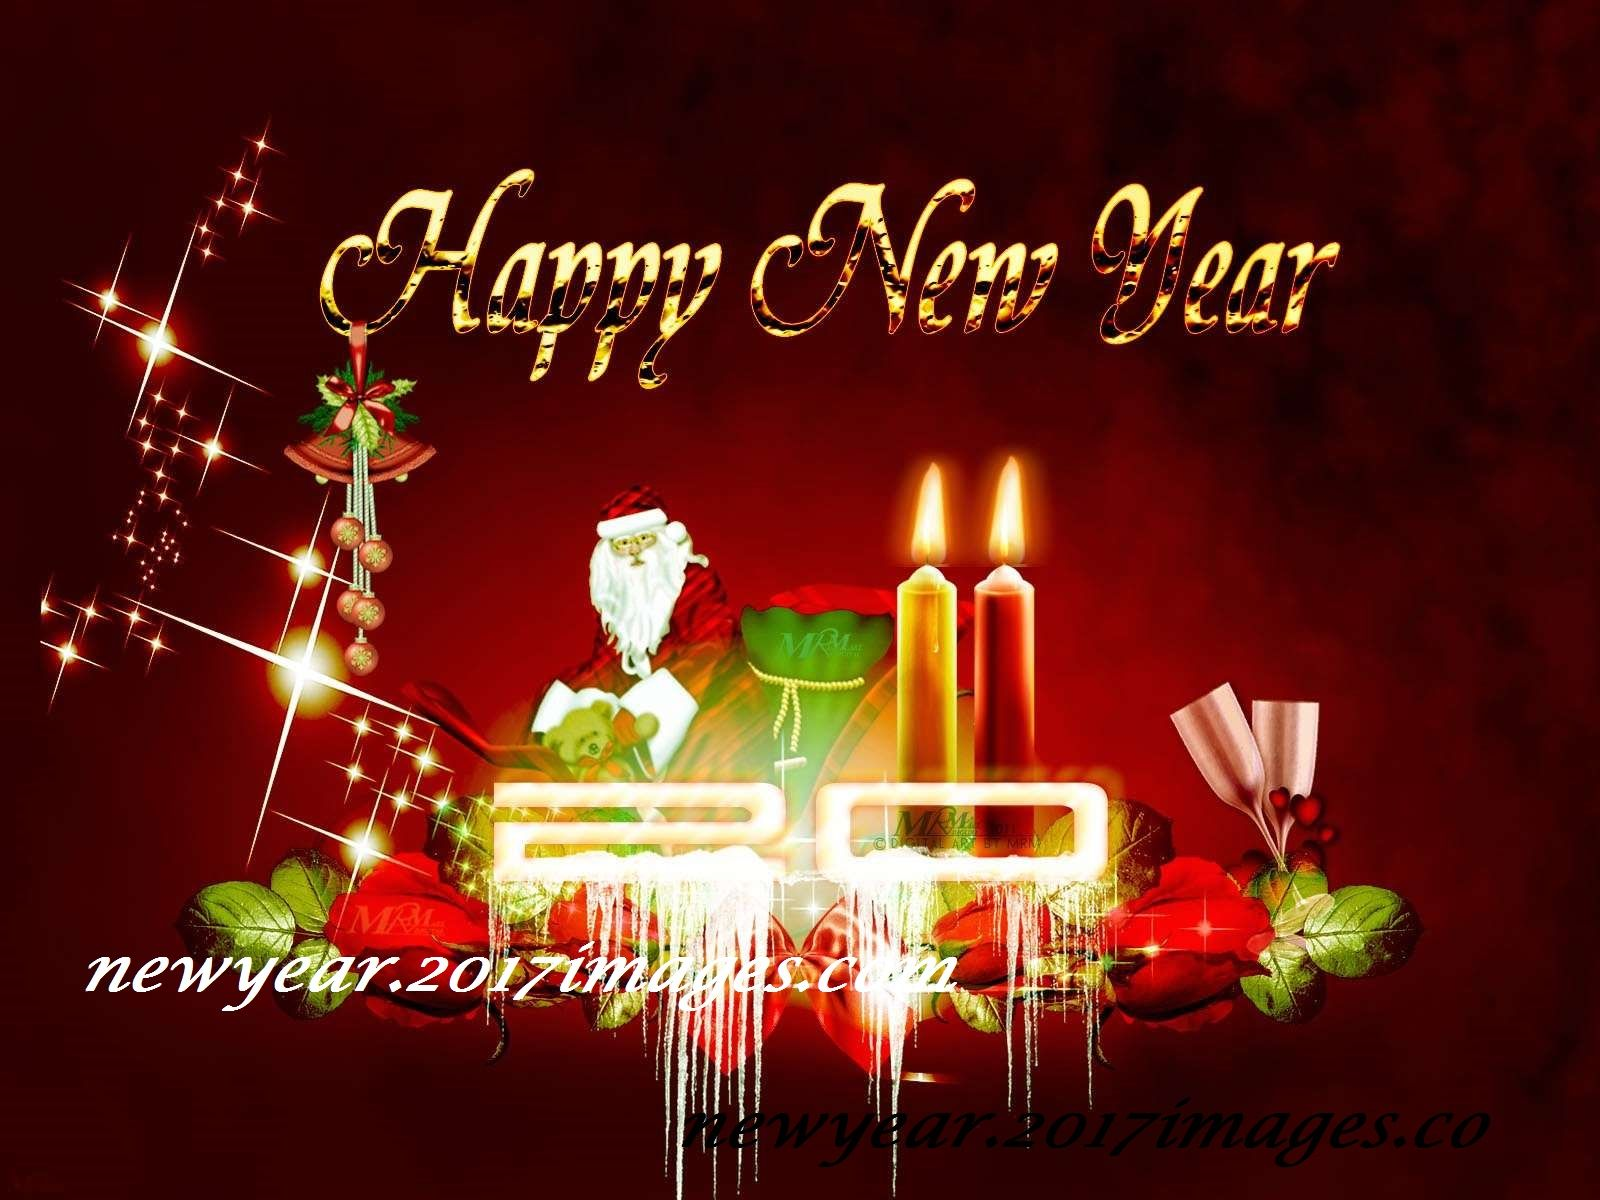 Top 18 happy new year 2017 wallpapers happy new year wallpapers explore new year wishes quotes and more kristyandbryce Images